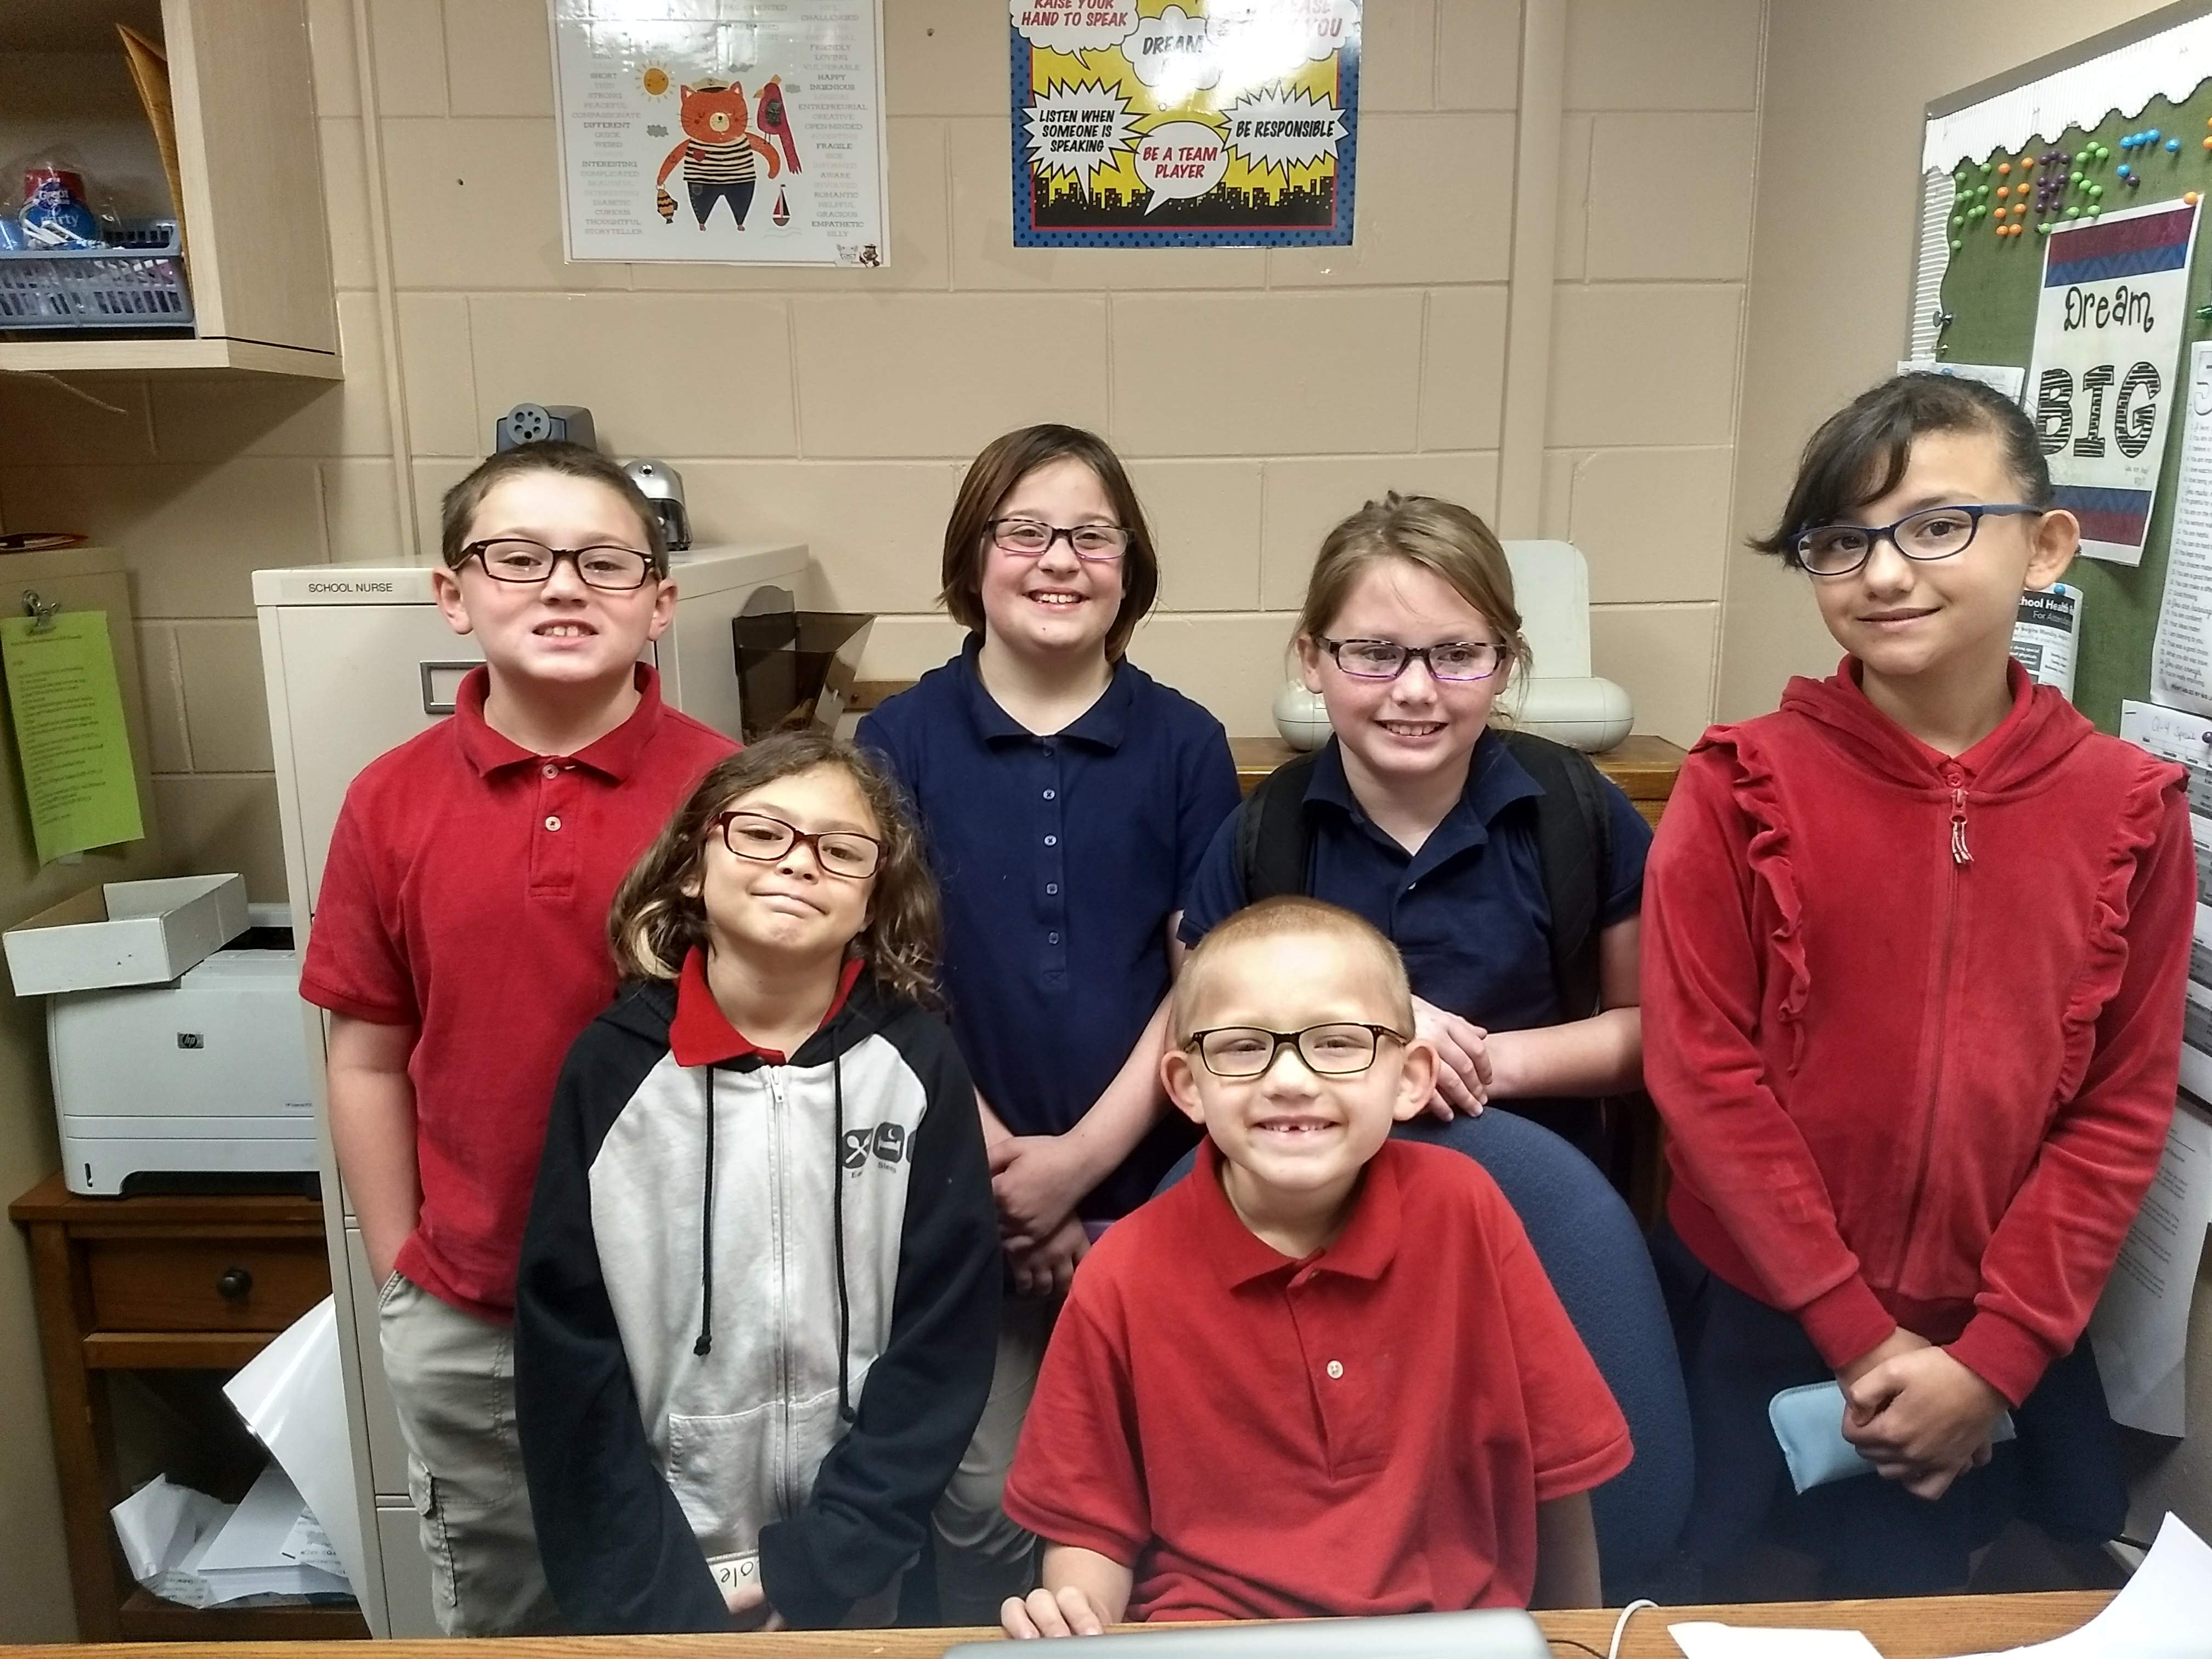 Hudson Elementary students show off the new eye glasses they received at no cost from the Florida Vision Quest vision van.